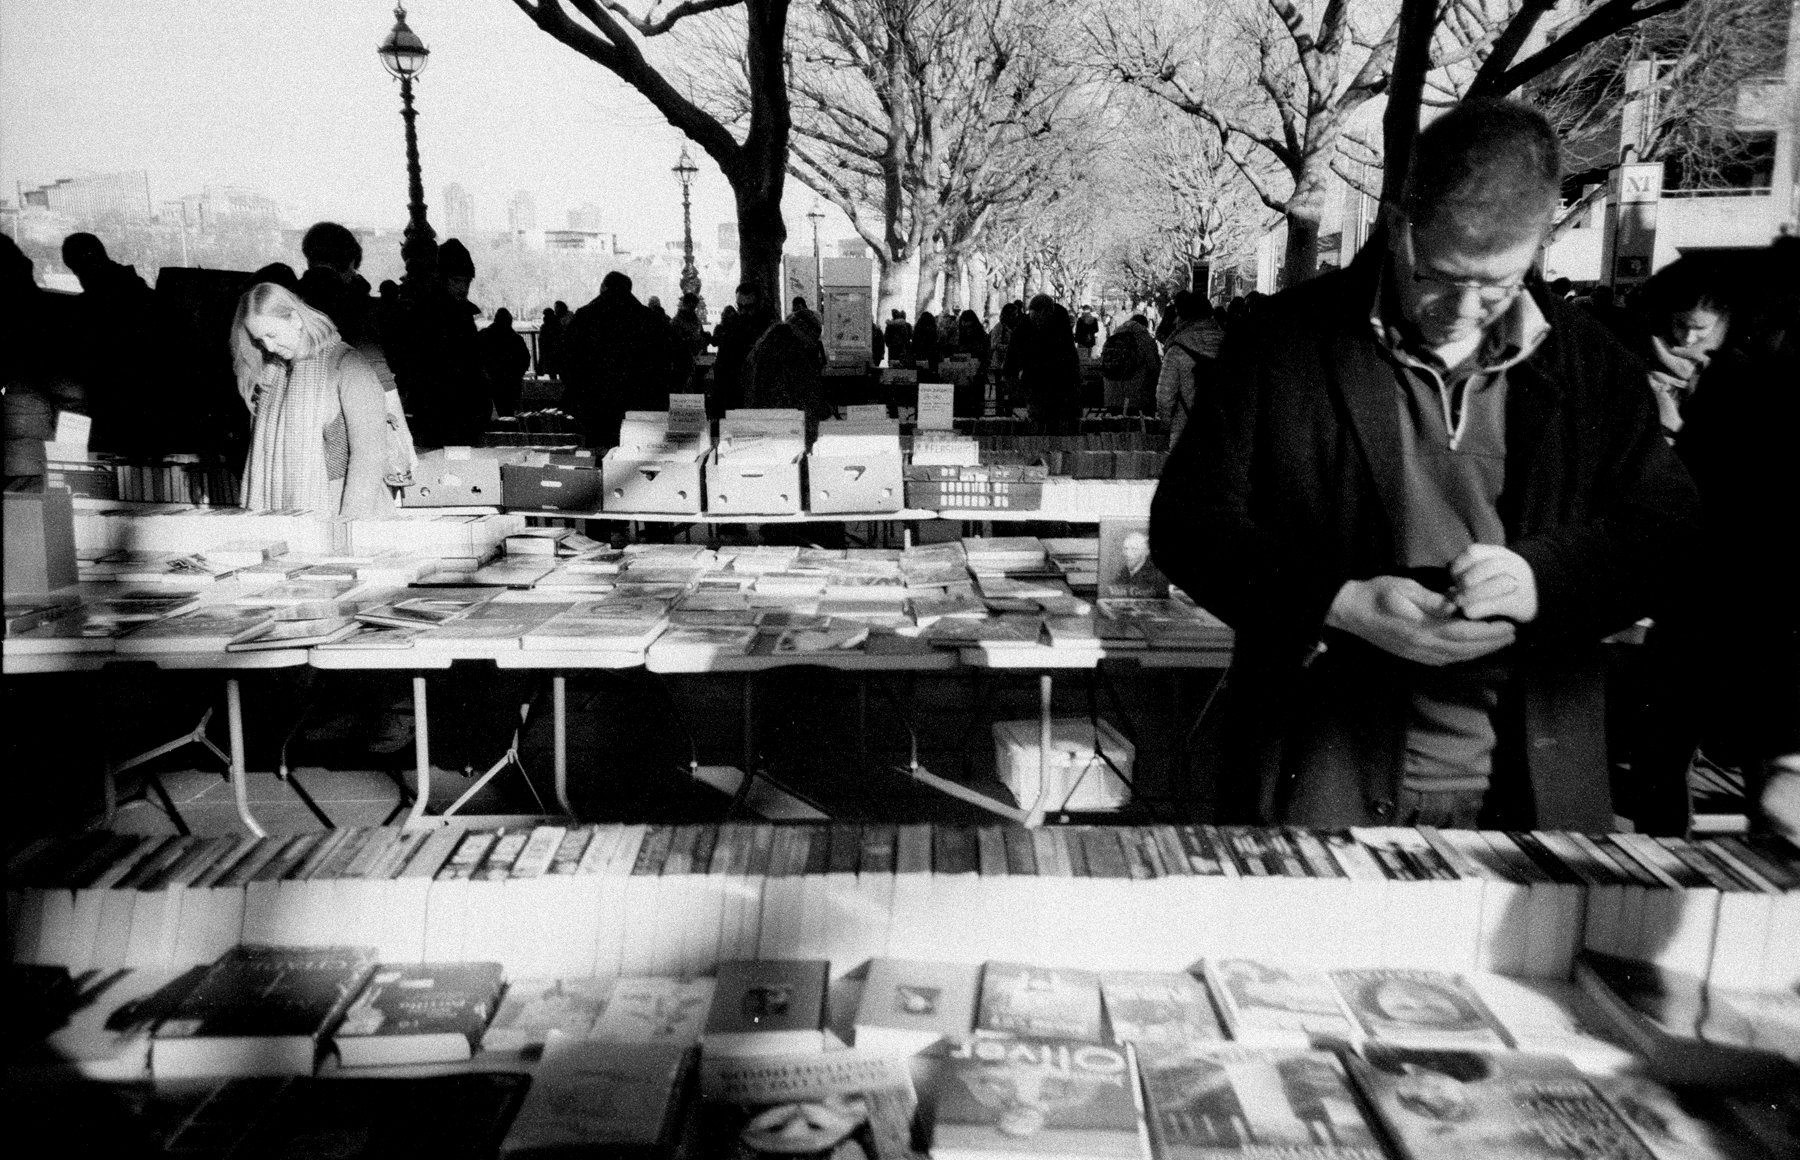 South Bank book stall (Pic: Stephen Dowling)